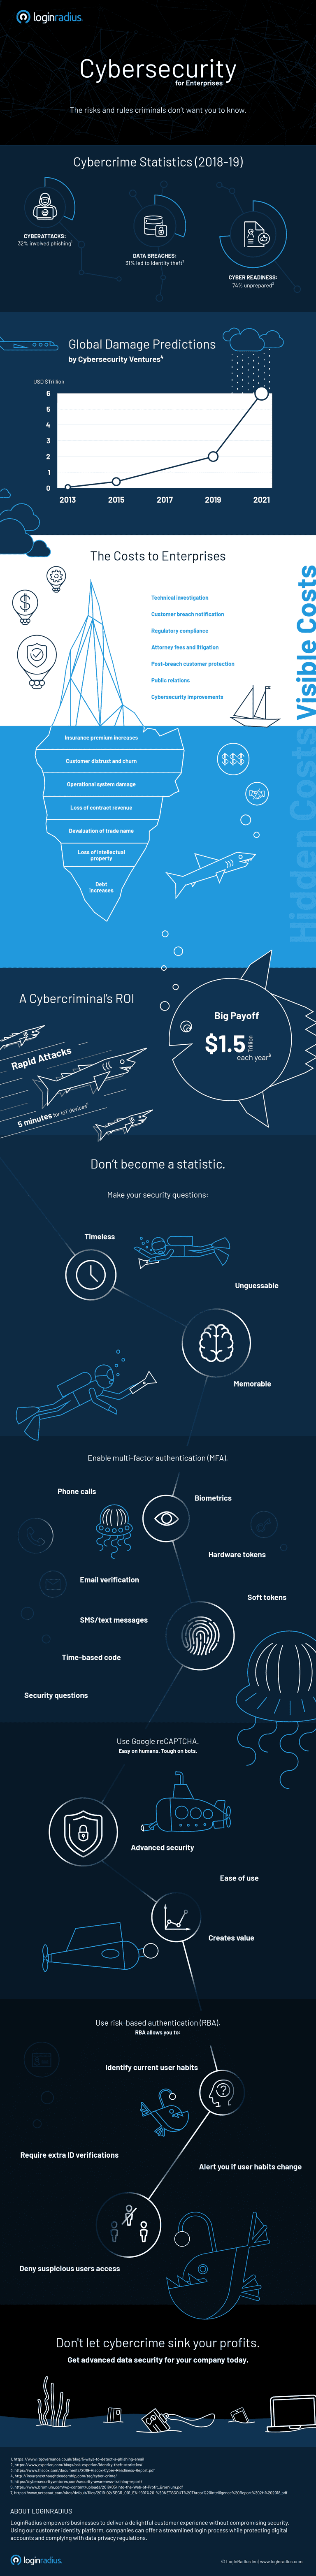 Cybersecurity-Best-Practices-for-Enterprises-Infographic